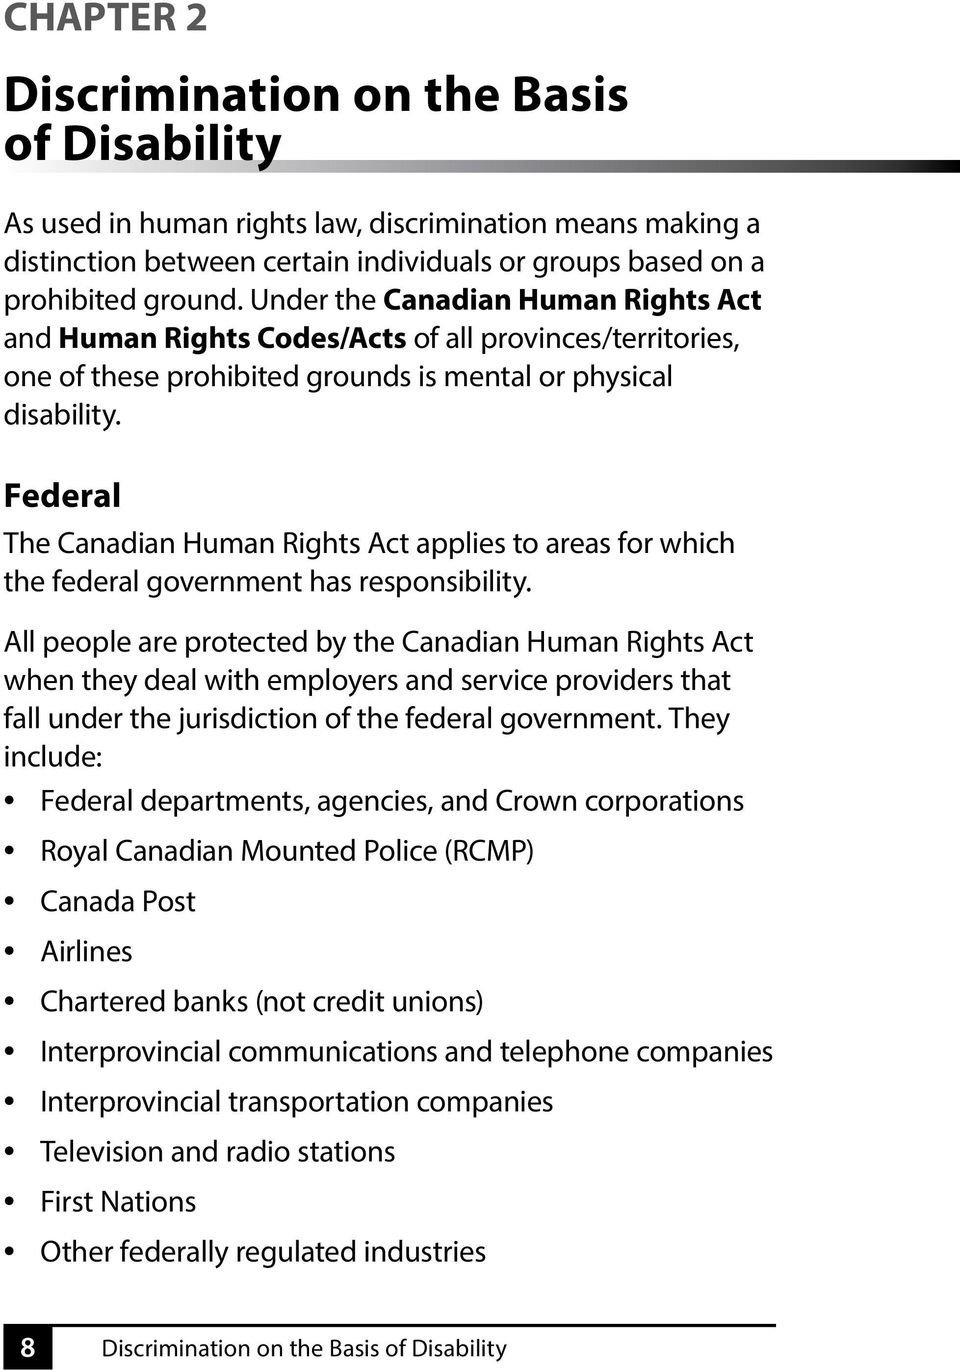 Federal The Canadian Human Rights Act applies to areas for which the federal government has responsibility.